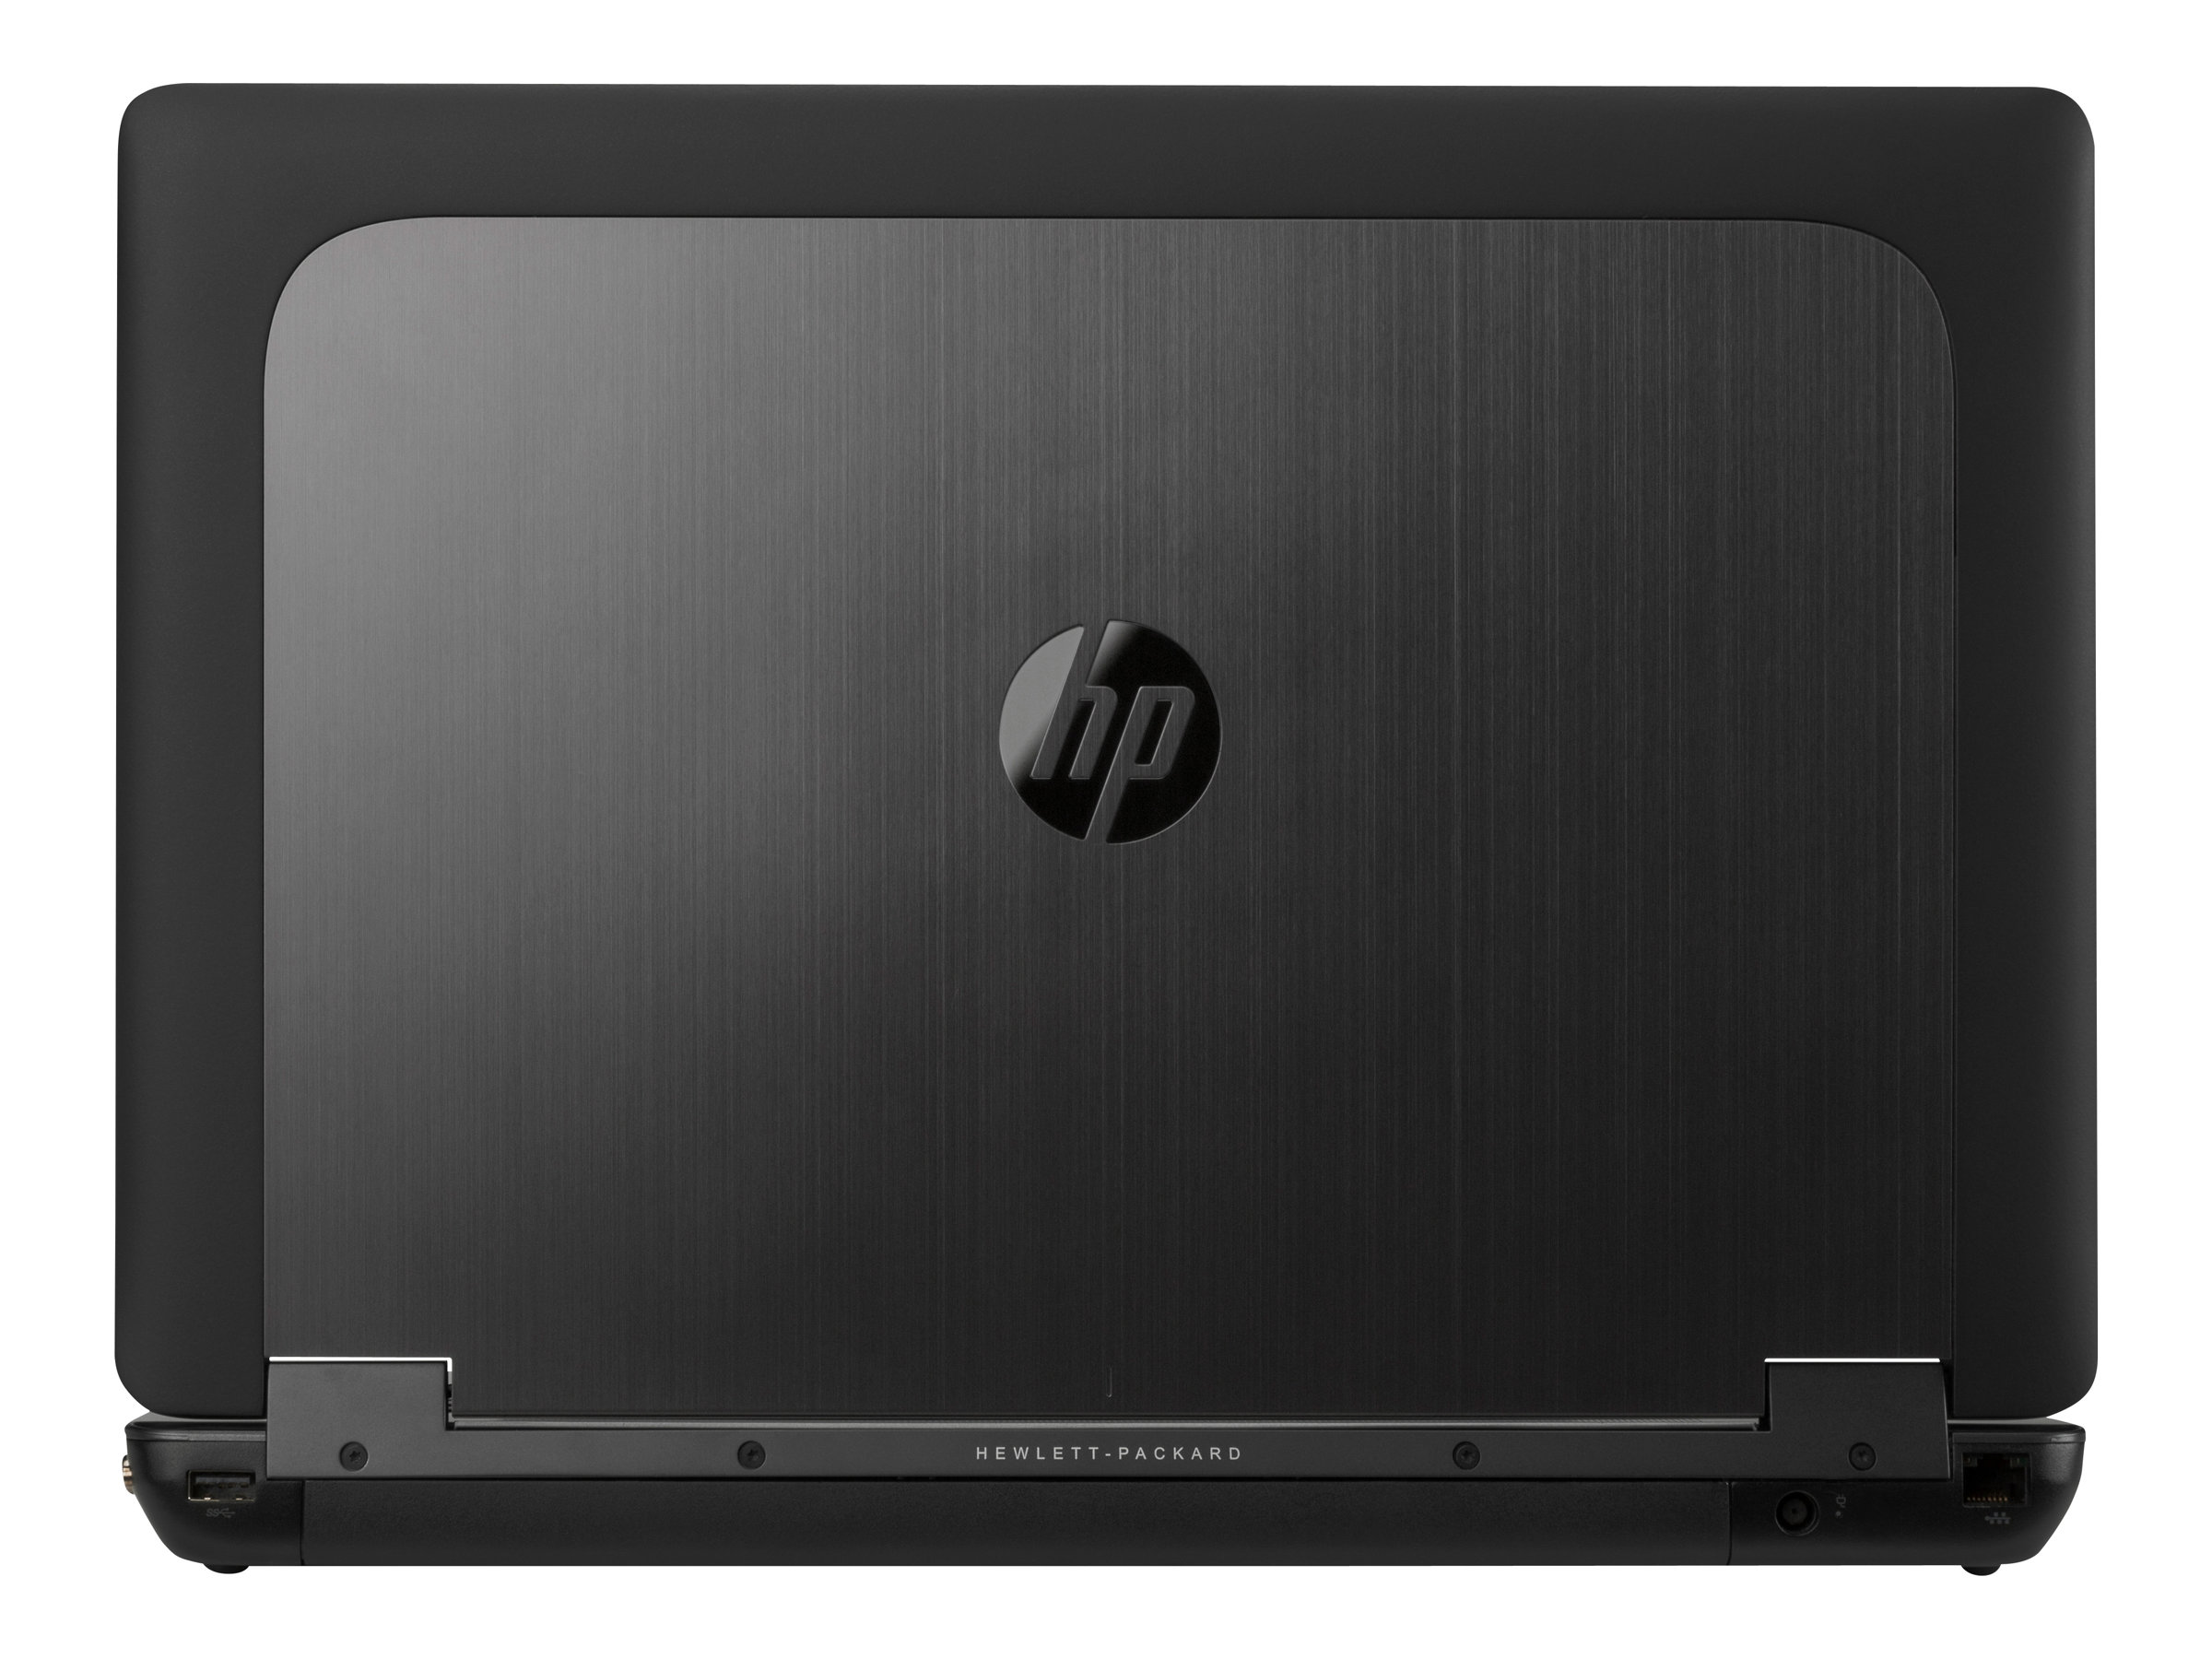 HP ZBook 15 Core i5-4340M 2.9GHz 8GB 500GB DVD+RW BT 15.6, N4J36US#ABA